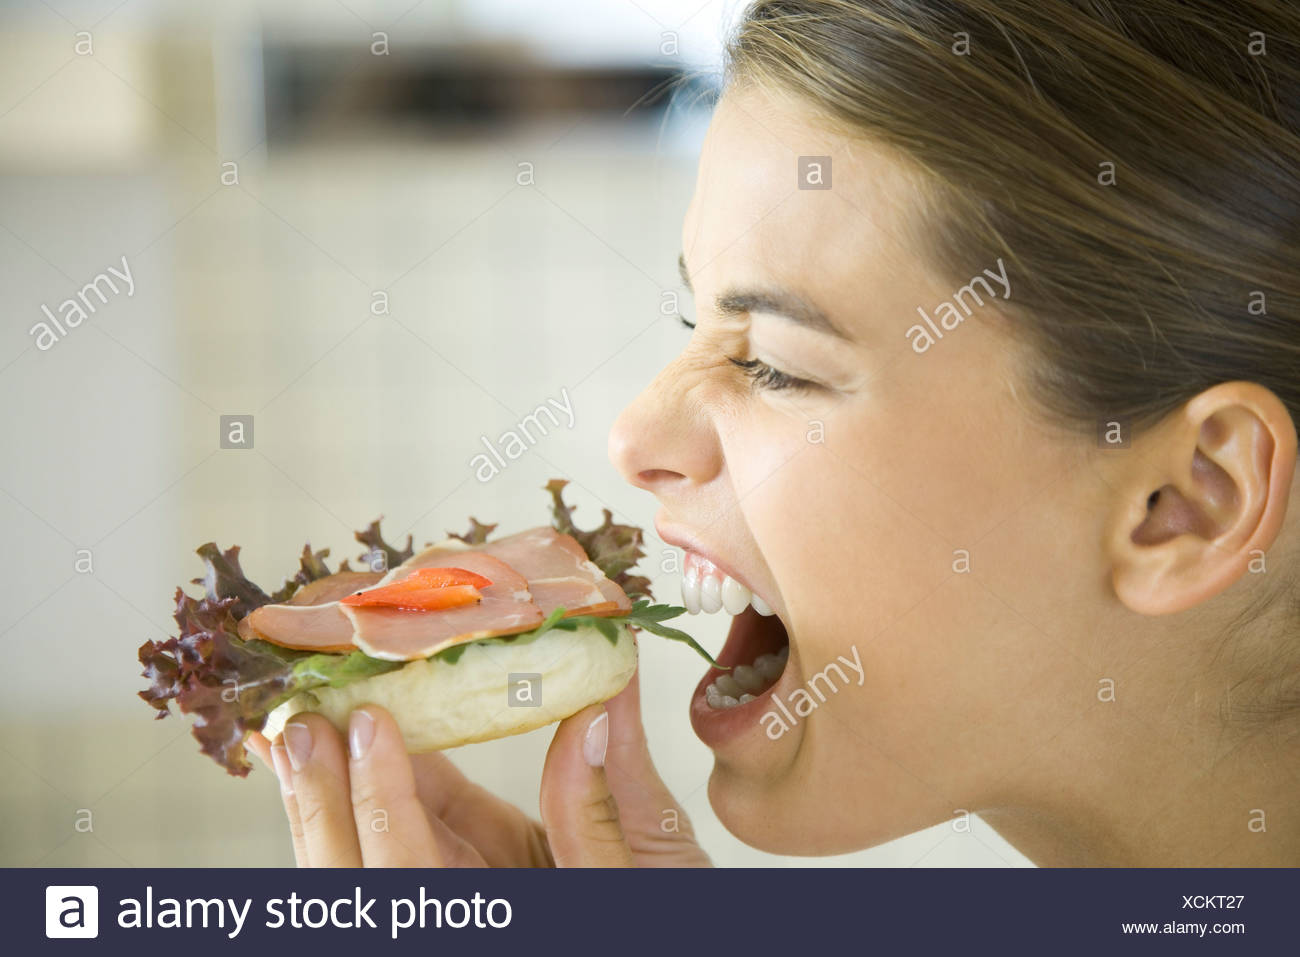 Woman eating open faced ham sandwich, close-up Stock Photo